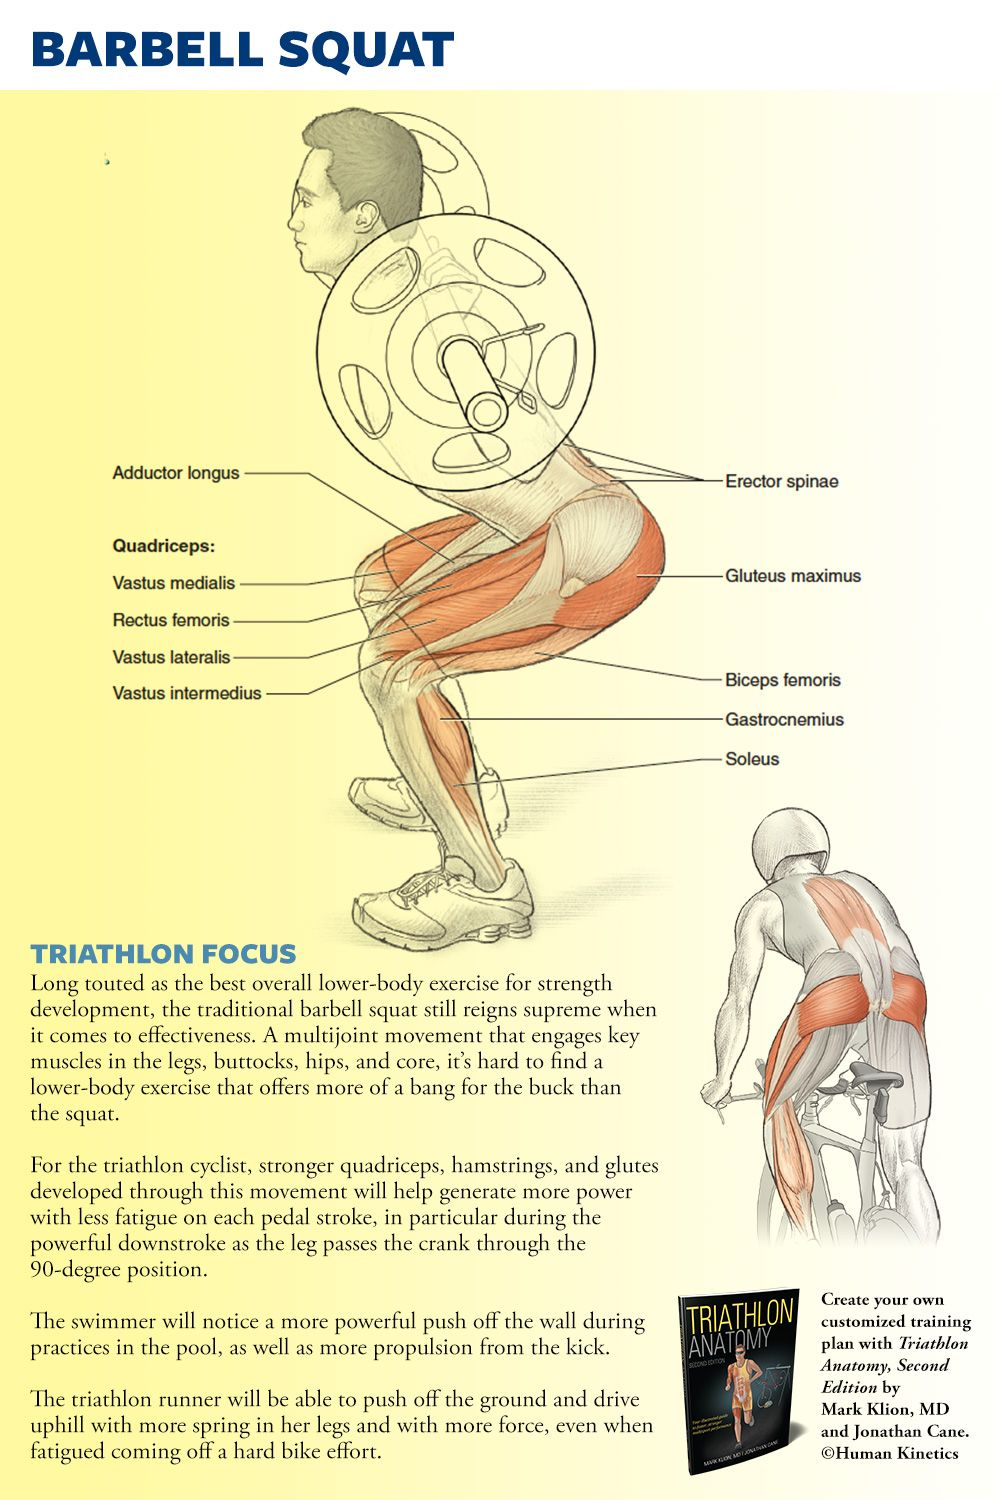 Barbell squat for powerful quads, hamstrings, & glutes in